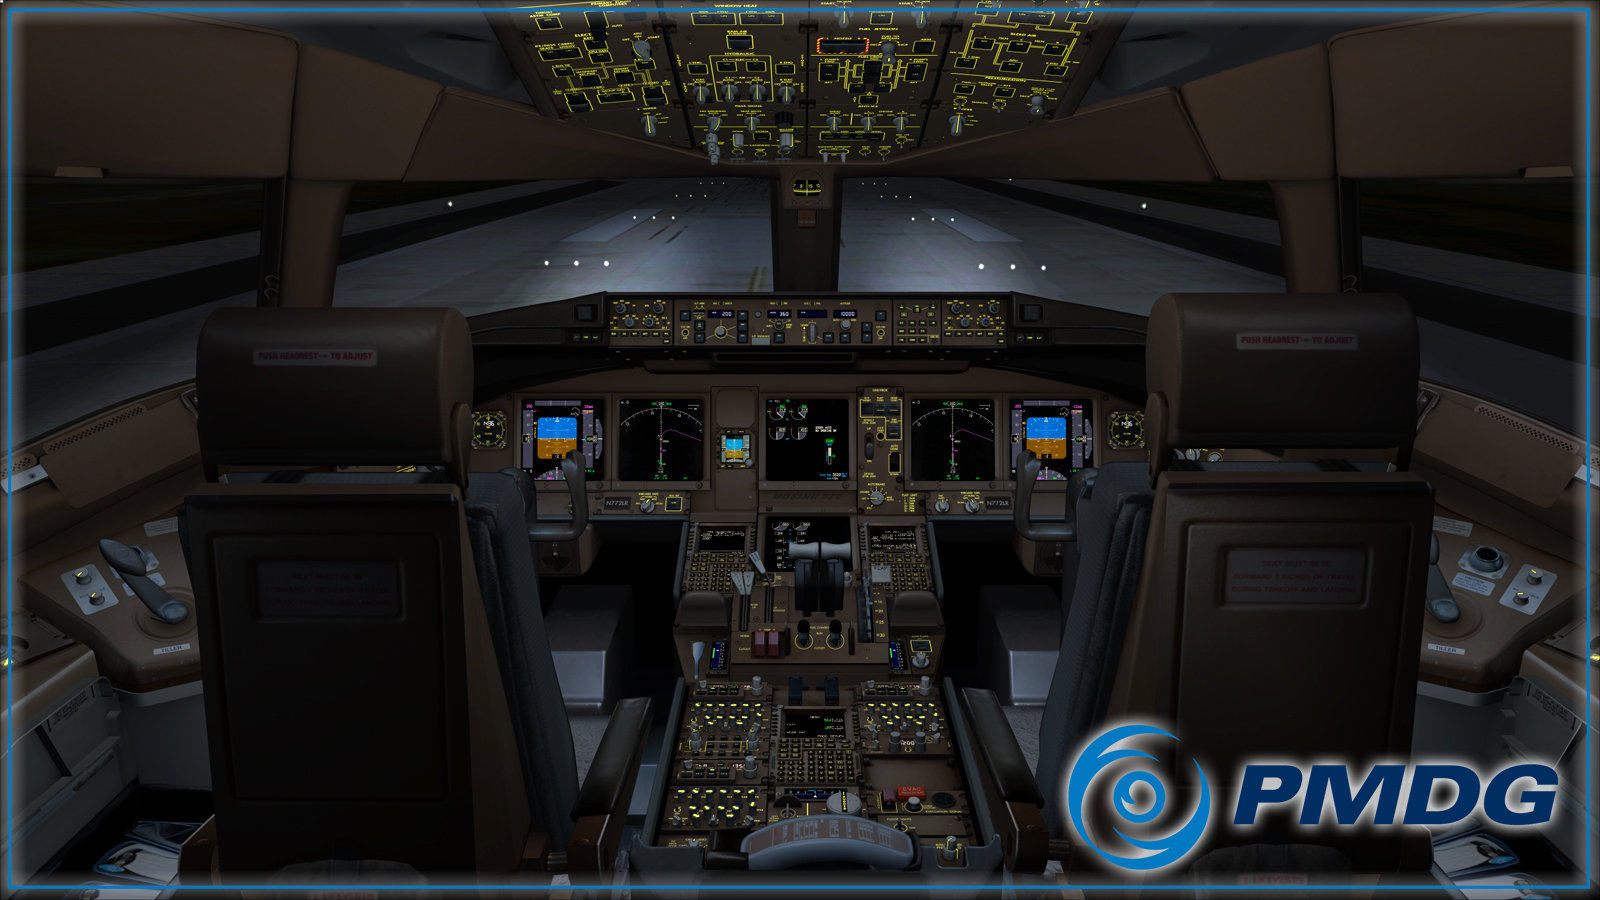 PMDG 777 Virtual Cockpit Will Leave You Speechless